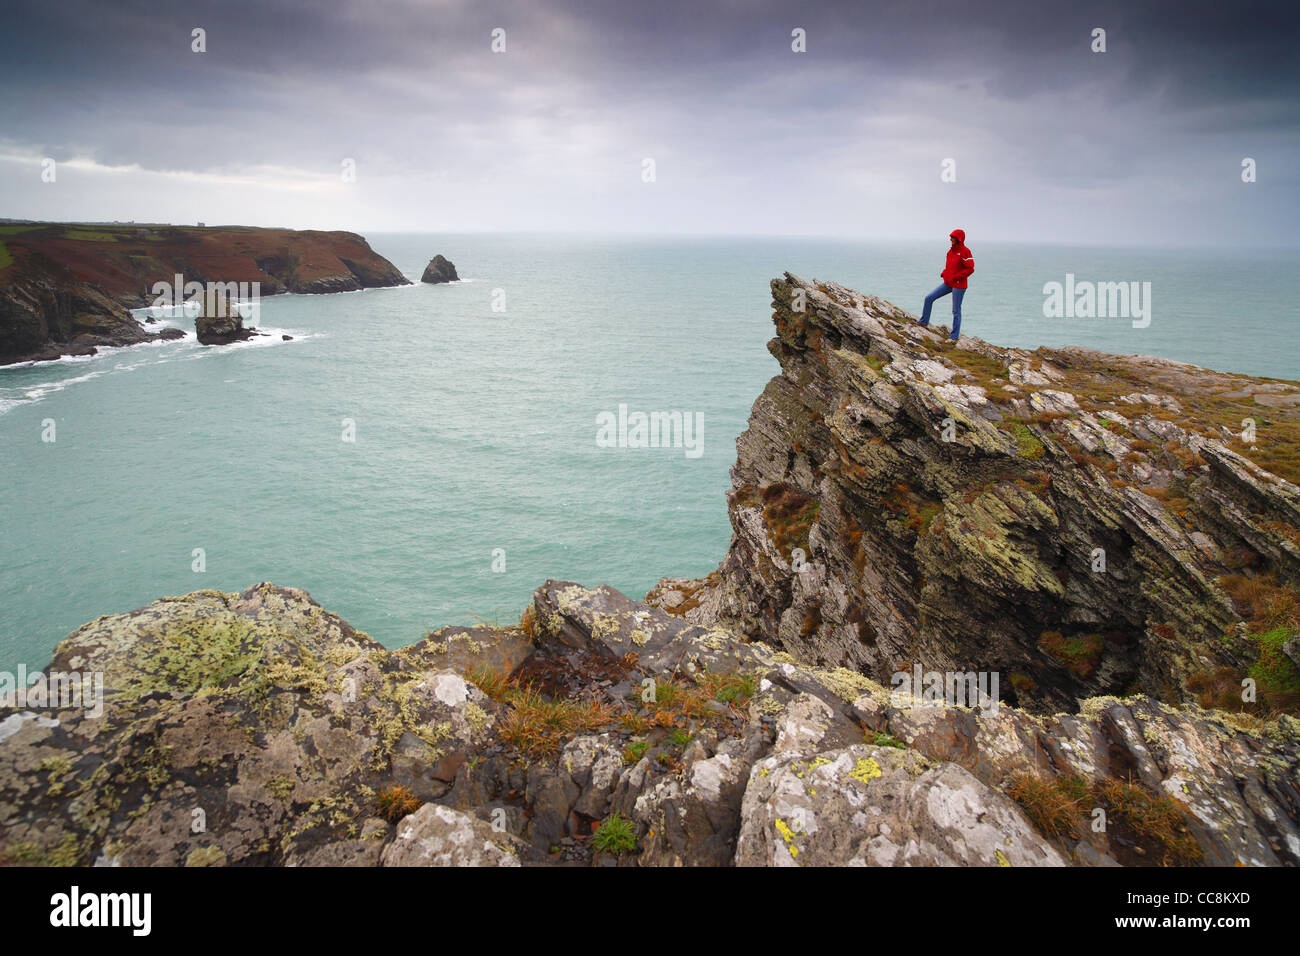 A walker stood on the headland at Boscastle in Cornwall, UK, looking west down the coast towards Tintagel. - Stock Image